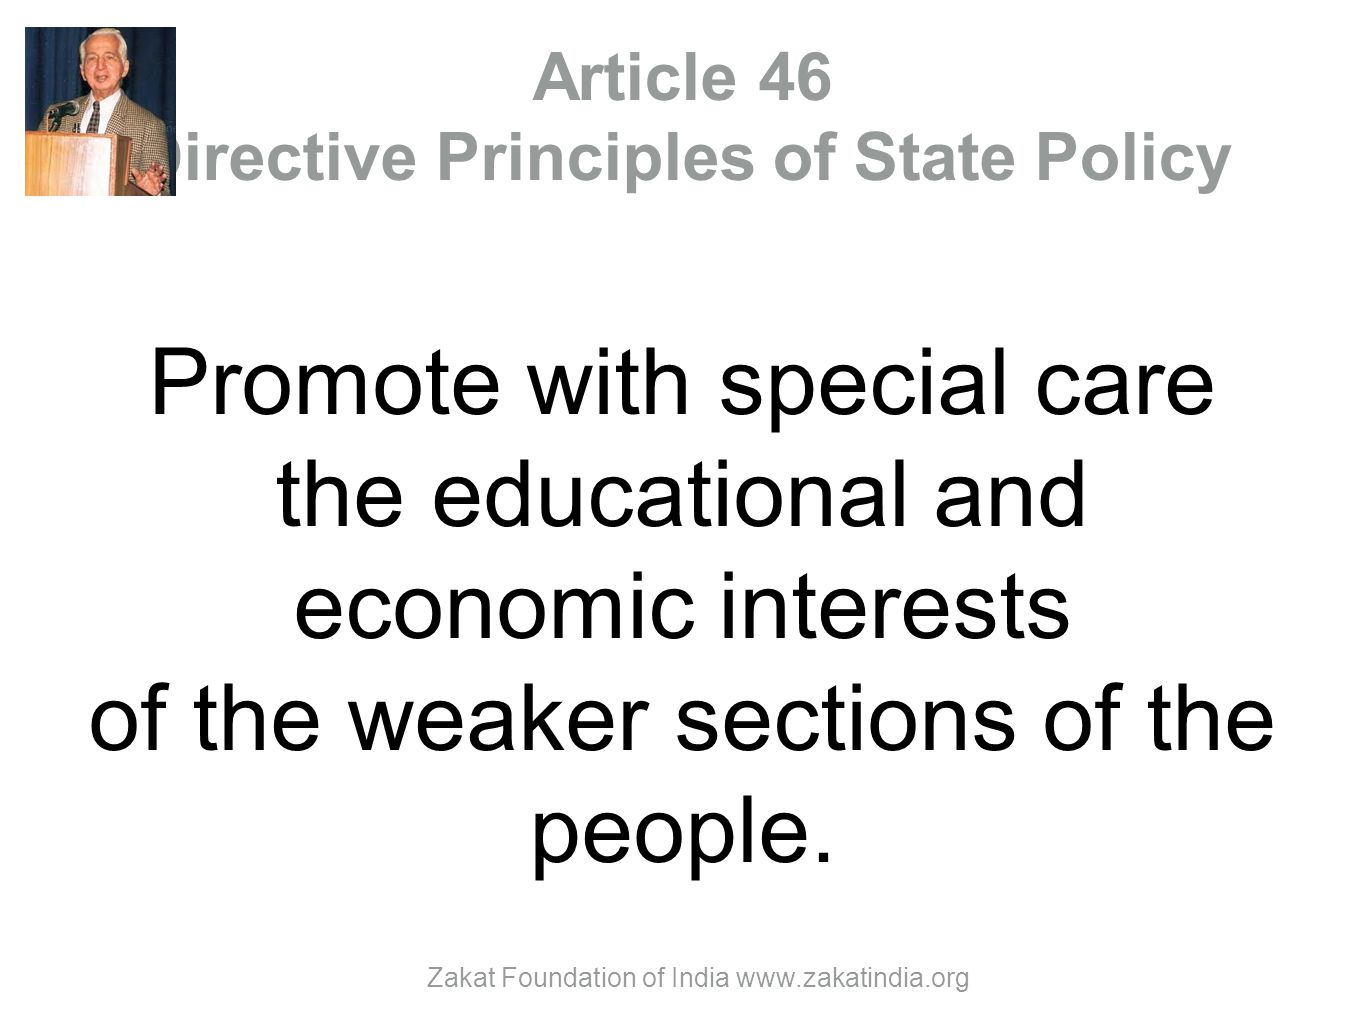 Article 46 Directive Principles of State Policy Promote with special care the educational and economic interests of the weaker sections of the people.